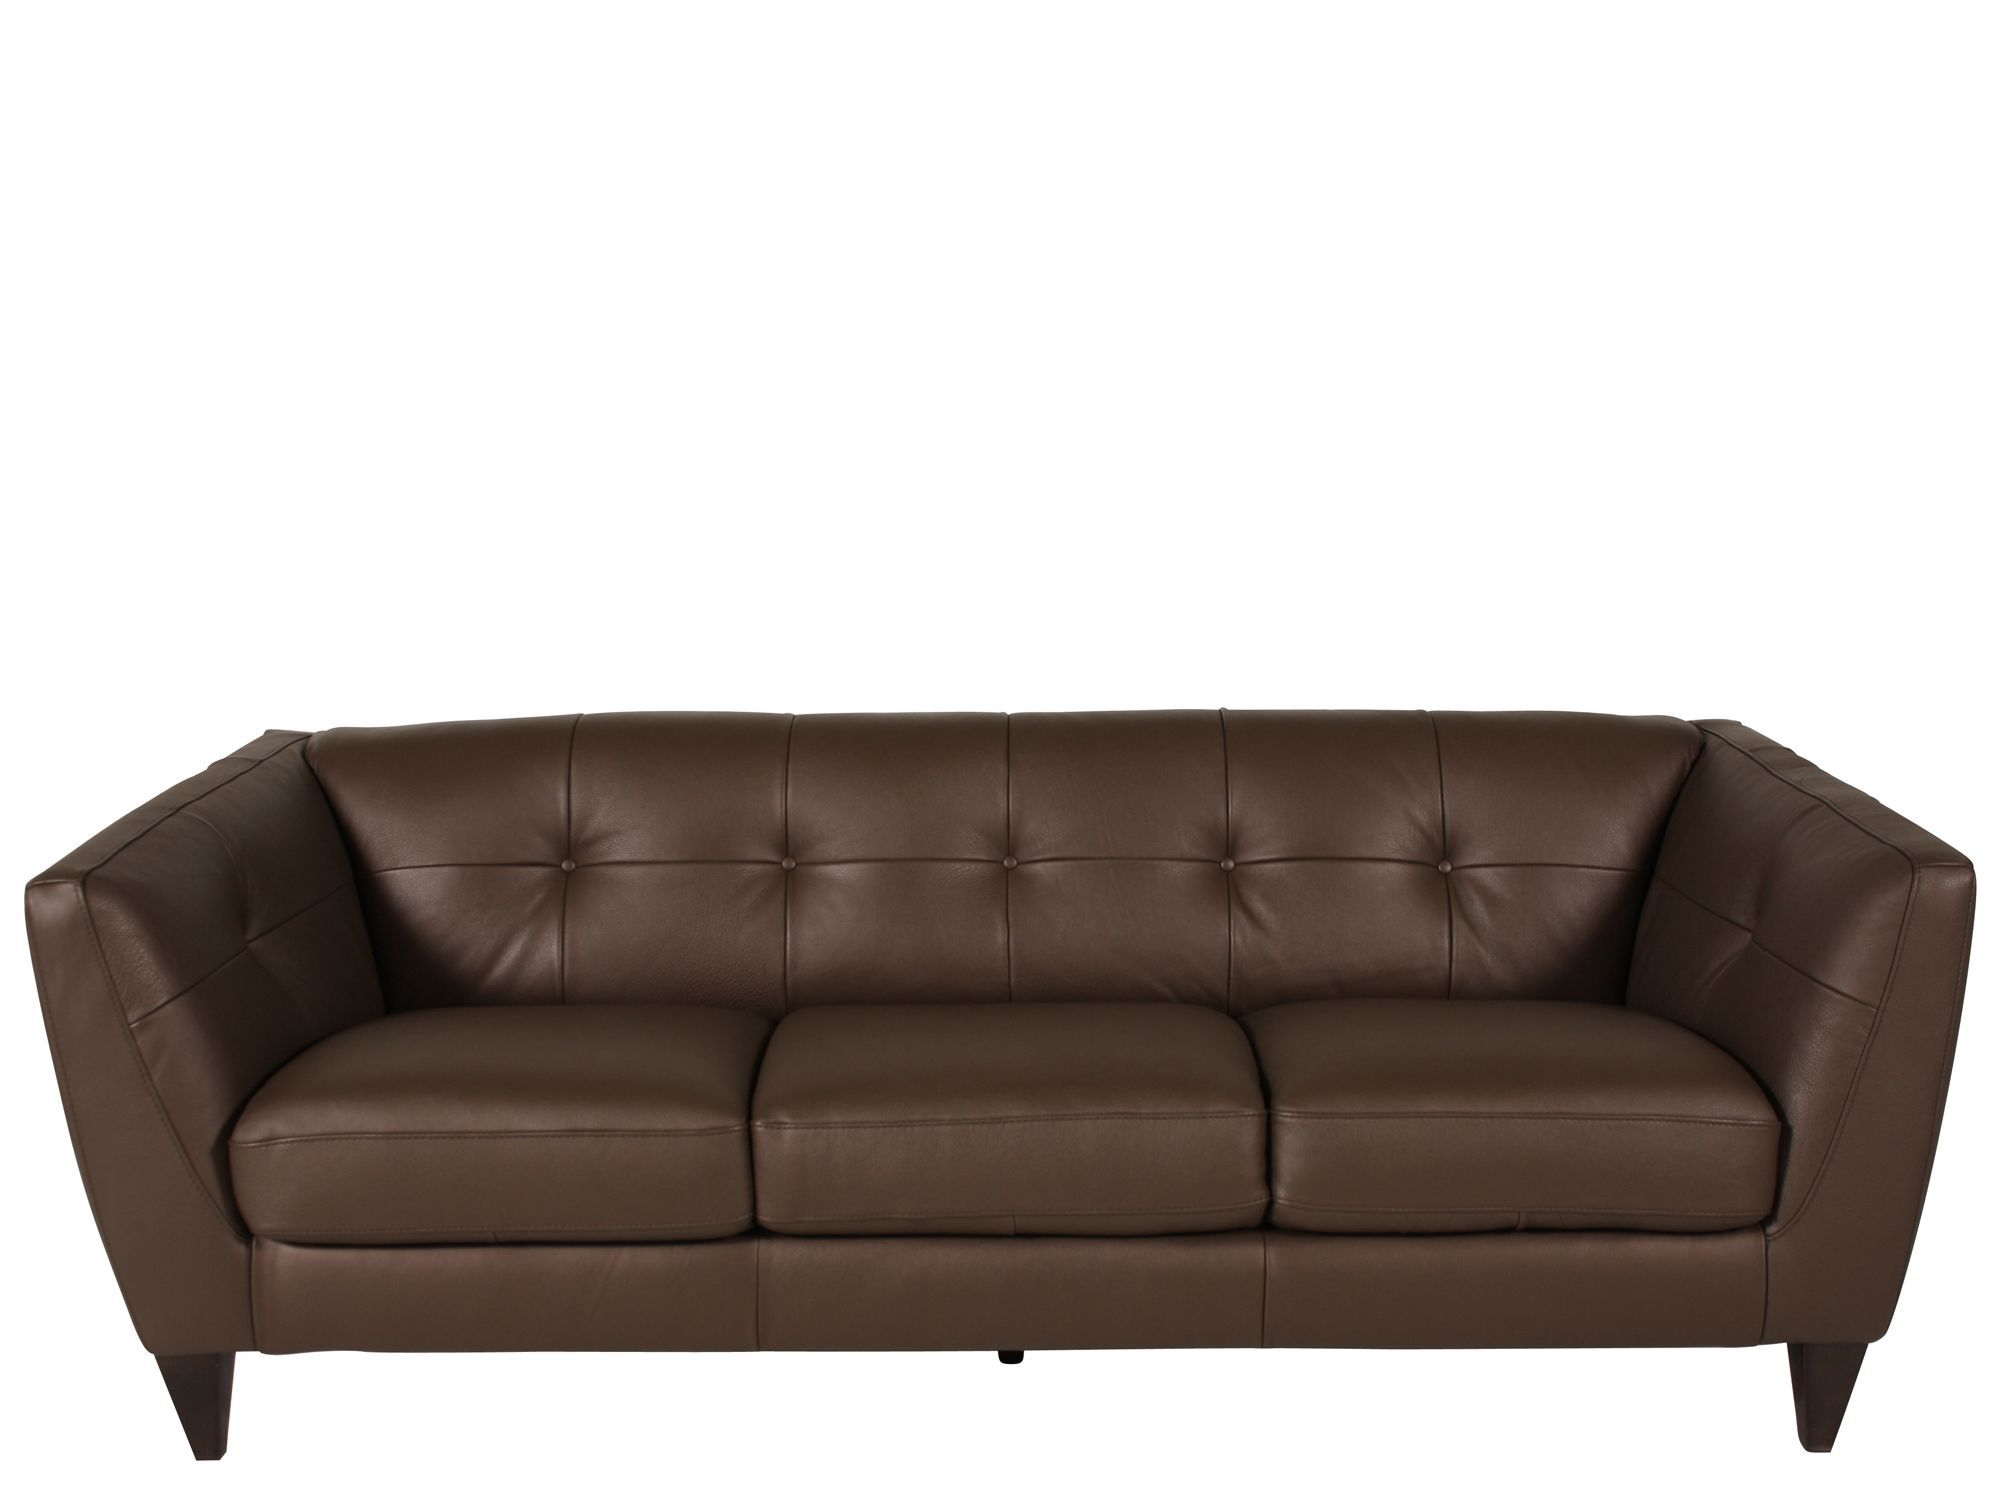 Natuzzi Mushroom Leather Sofa | decor | Pinterest | Leather sofas ...